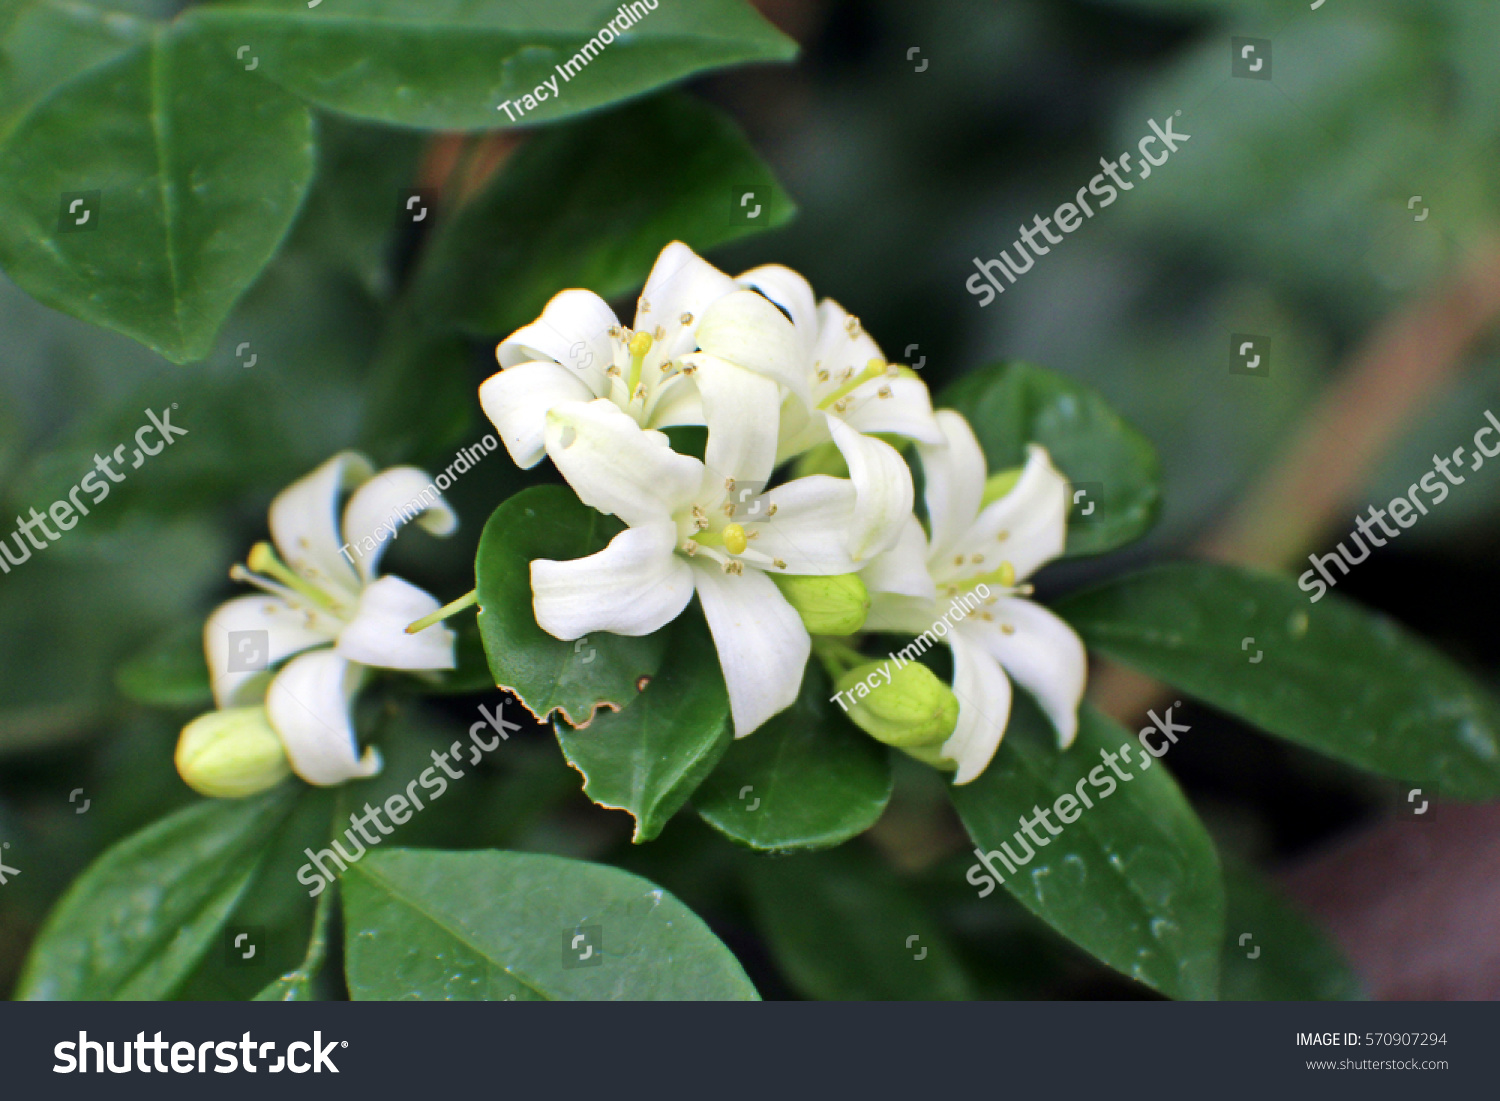 A Close Up Of A Cluster Of Small White Flowers And Flower Buds On A